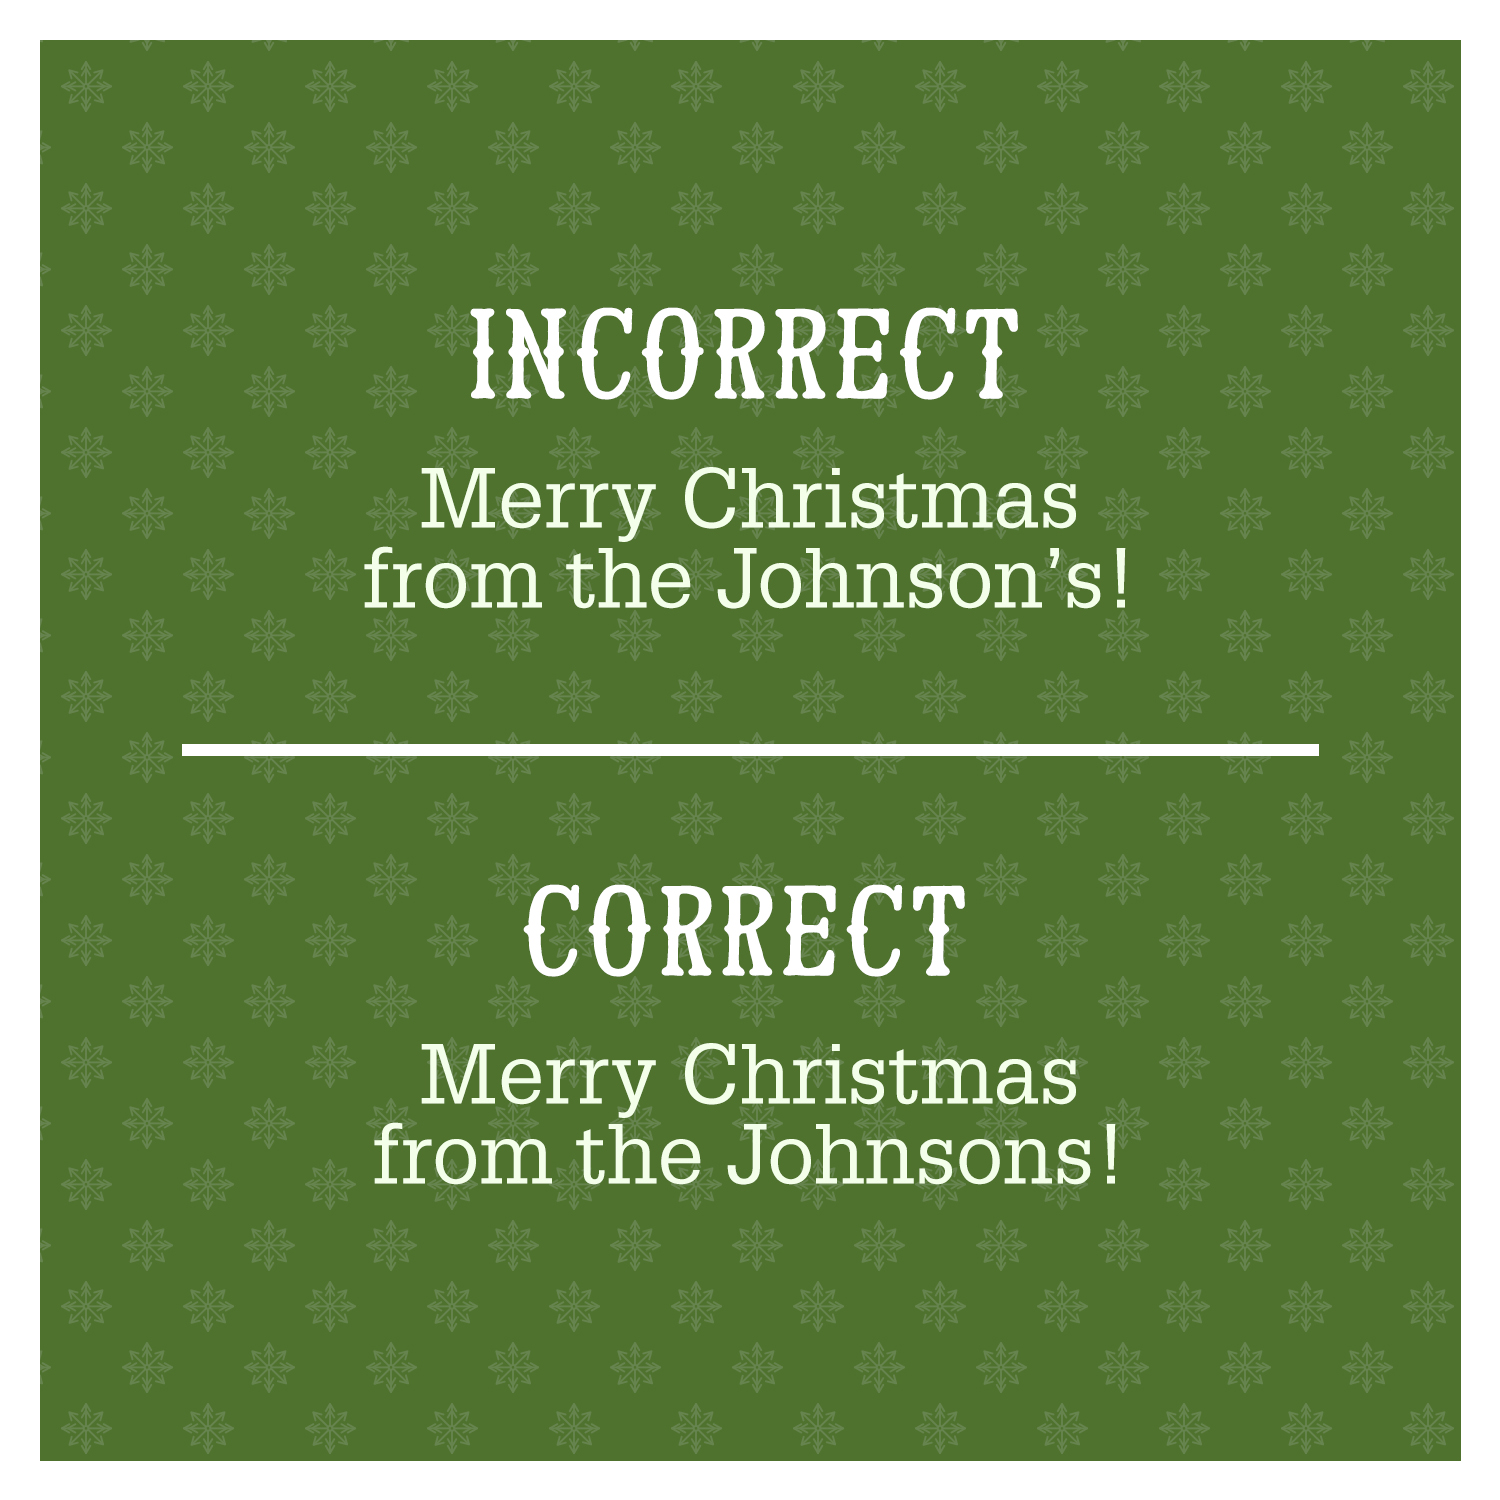 Merry Christmas grammar mistake